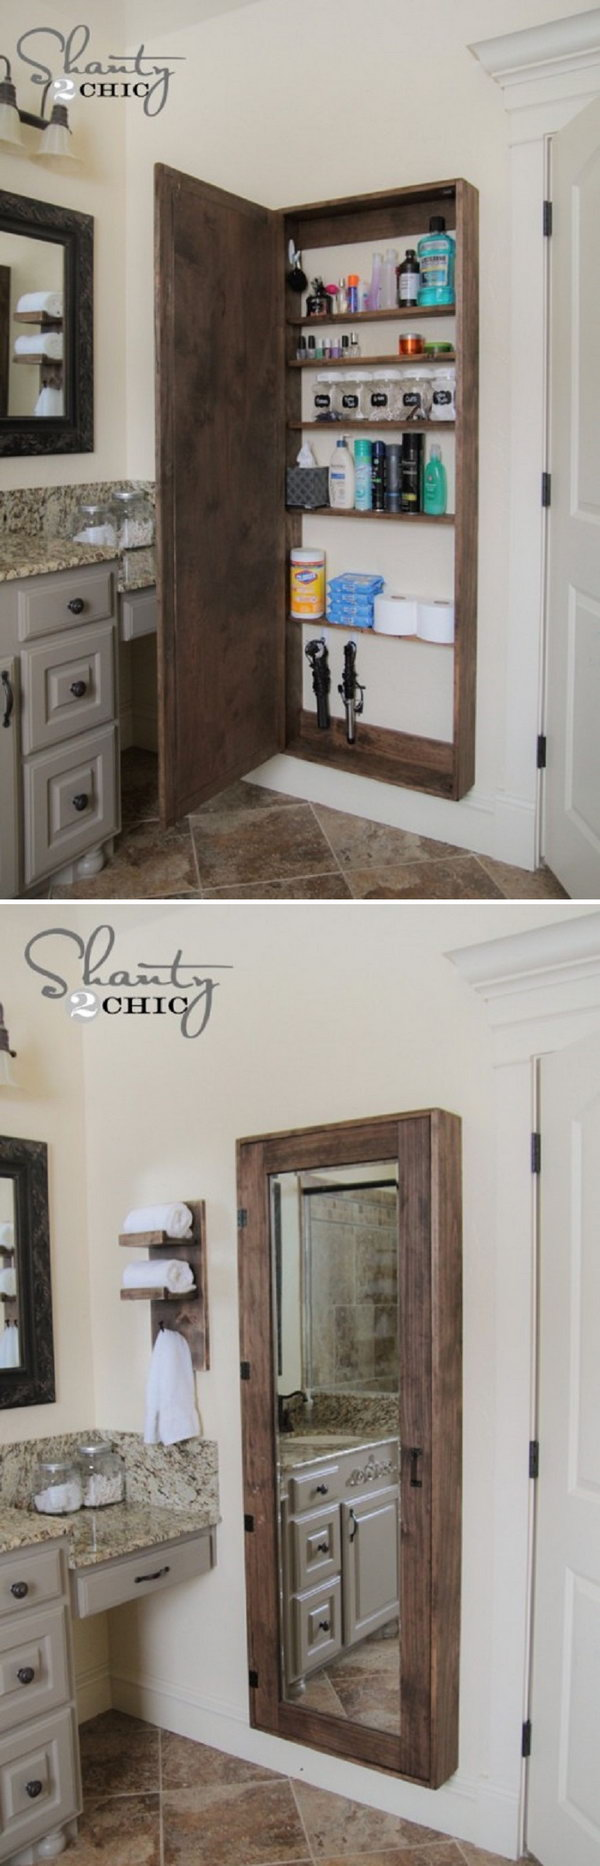 20 clever hidden storage ideas hative for Hidden bathroom pics